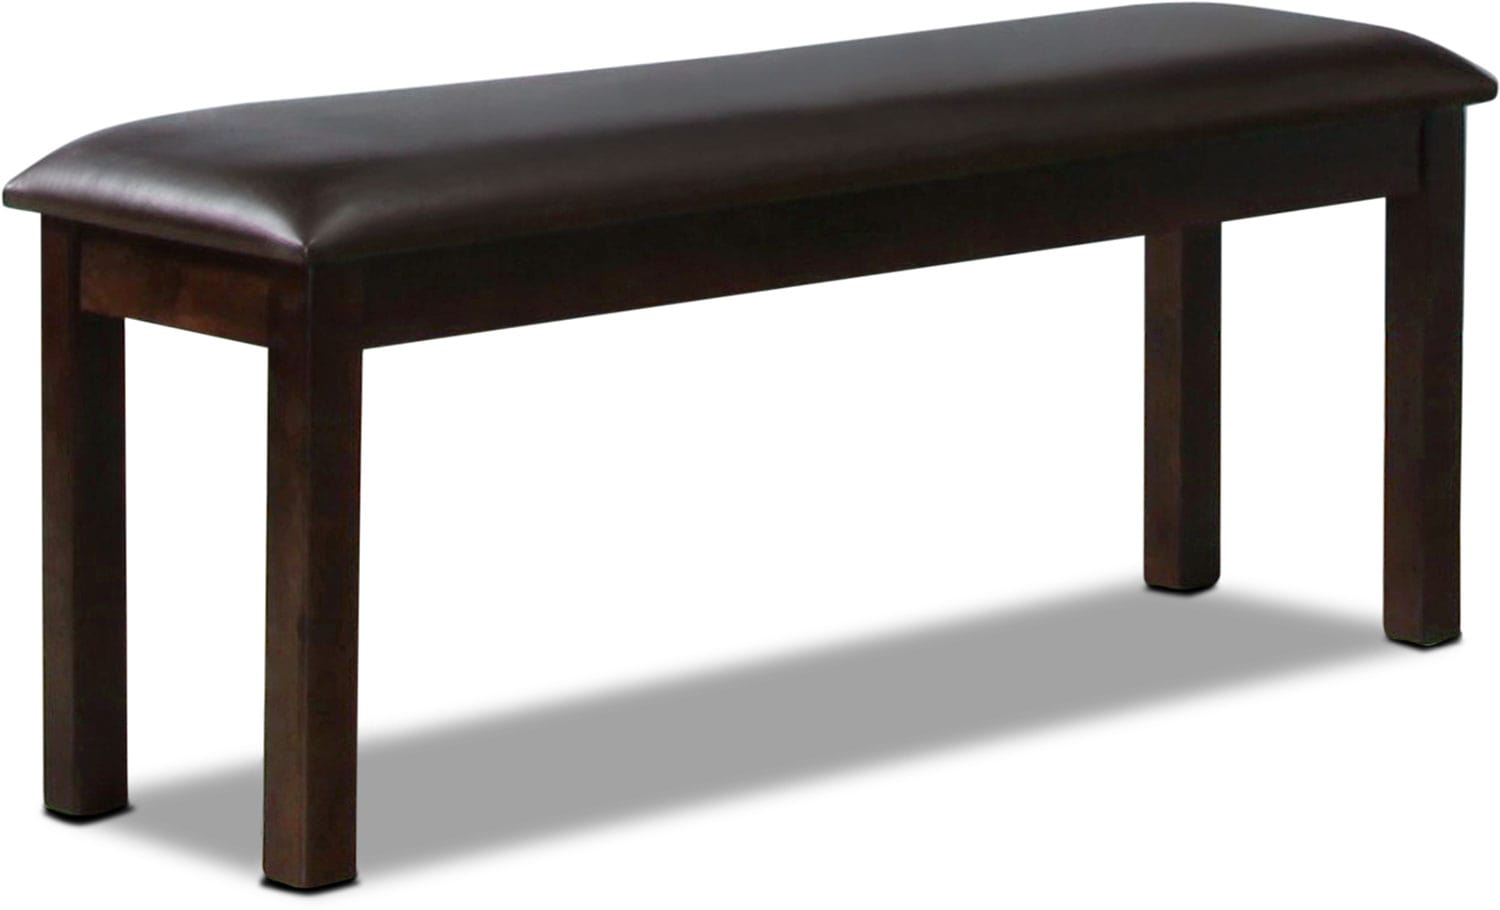 Cabot cove dining bench levin furniture for Dining room furniture 0 finance